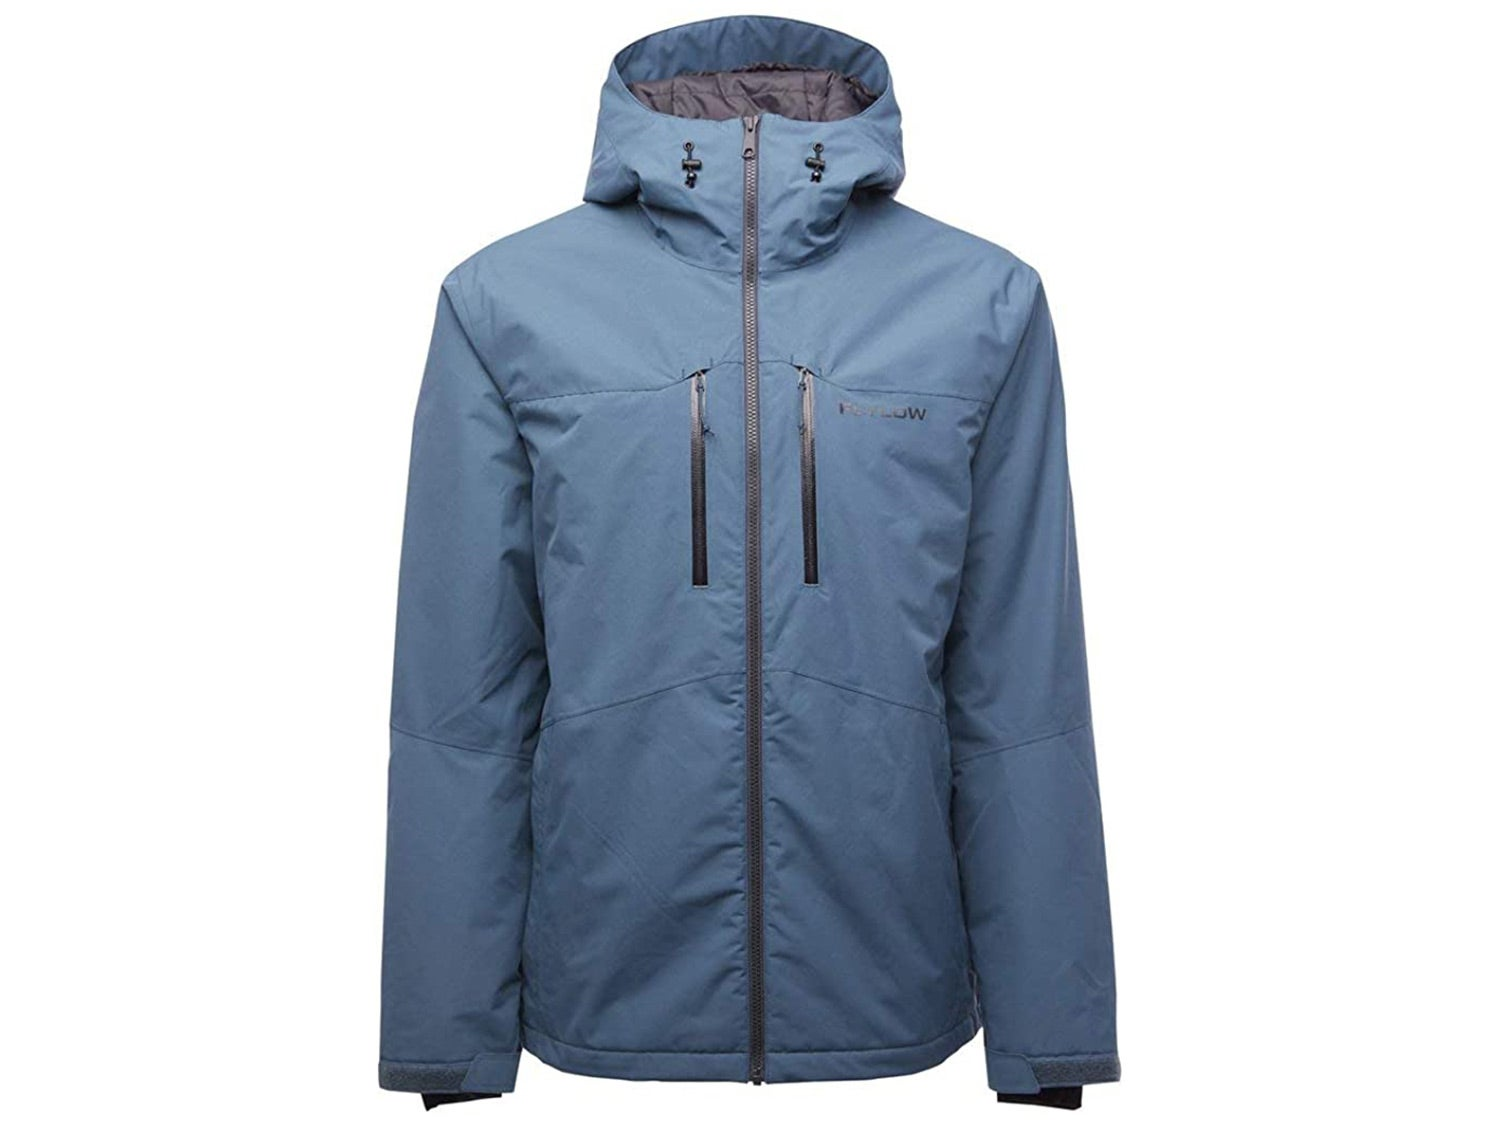 Flylow Roswell Insulated Jacket is one of the best hooded puffer jackets.